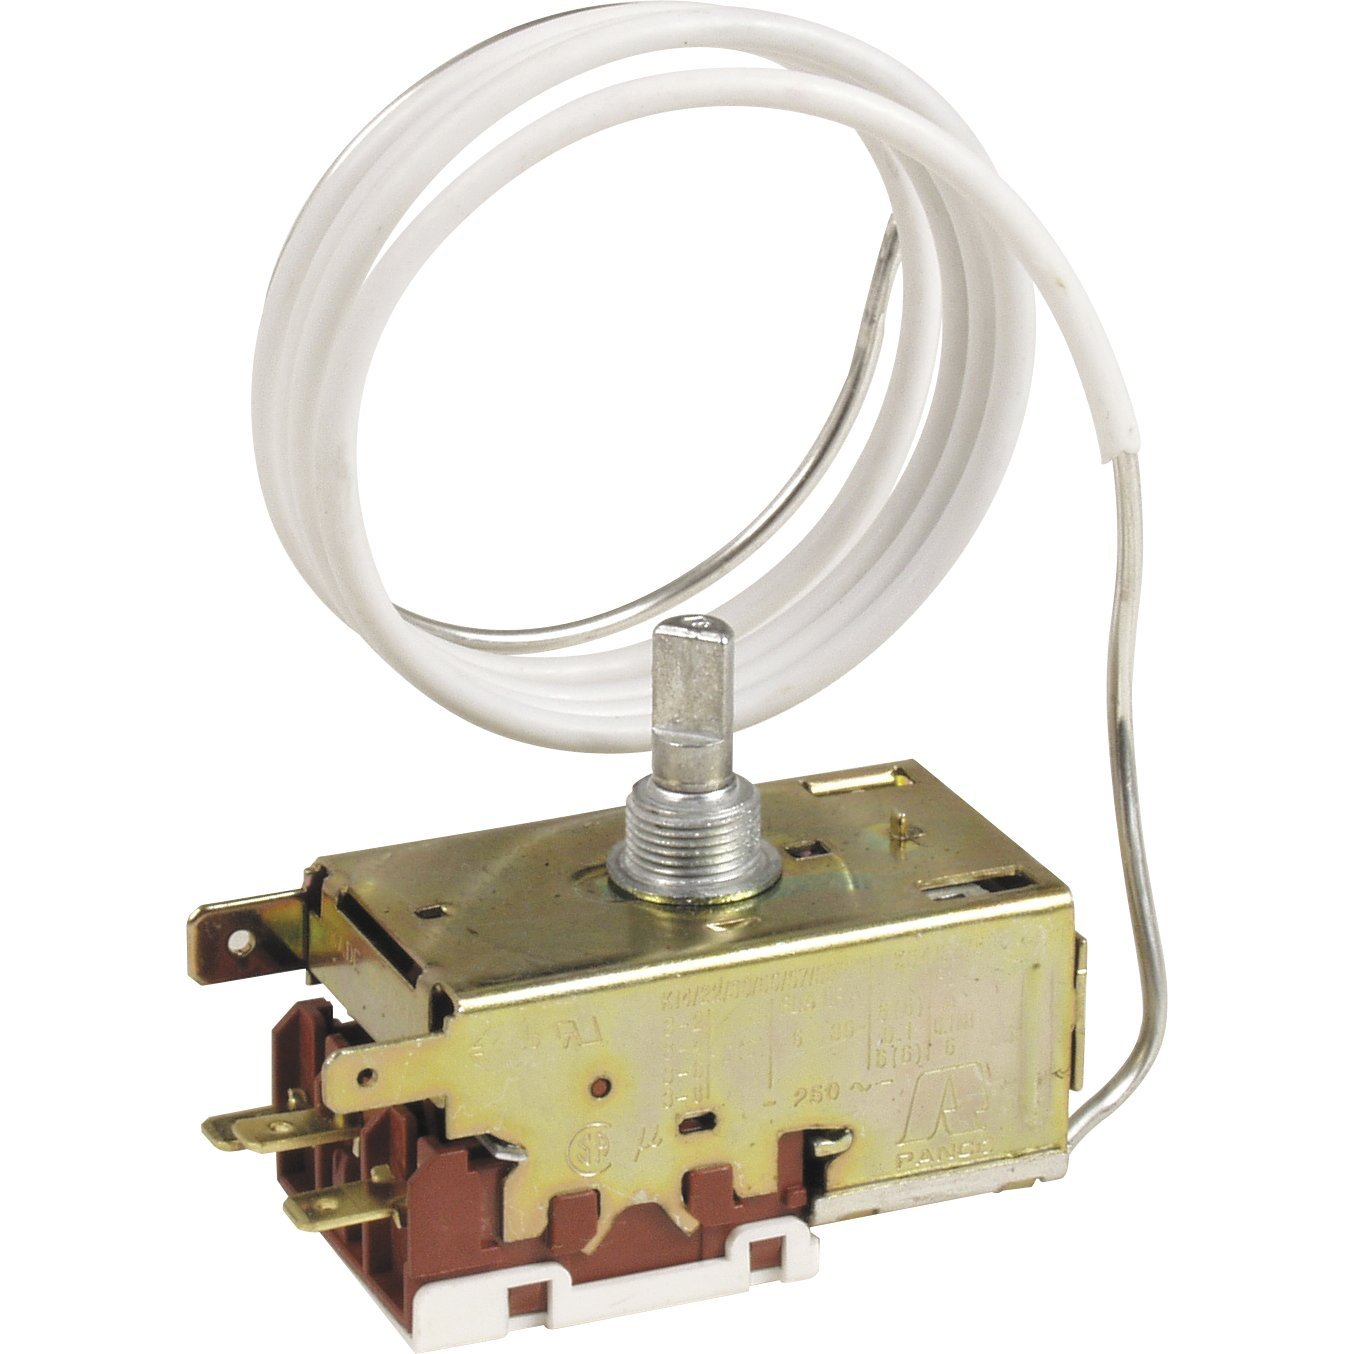 Ranco K 59 L 1287 Alternative Refrigerator Thermostat Accessory K 59 L 1287